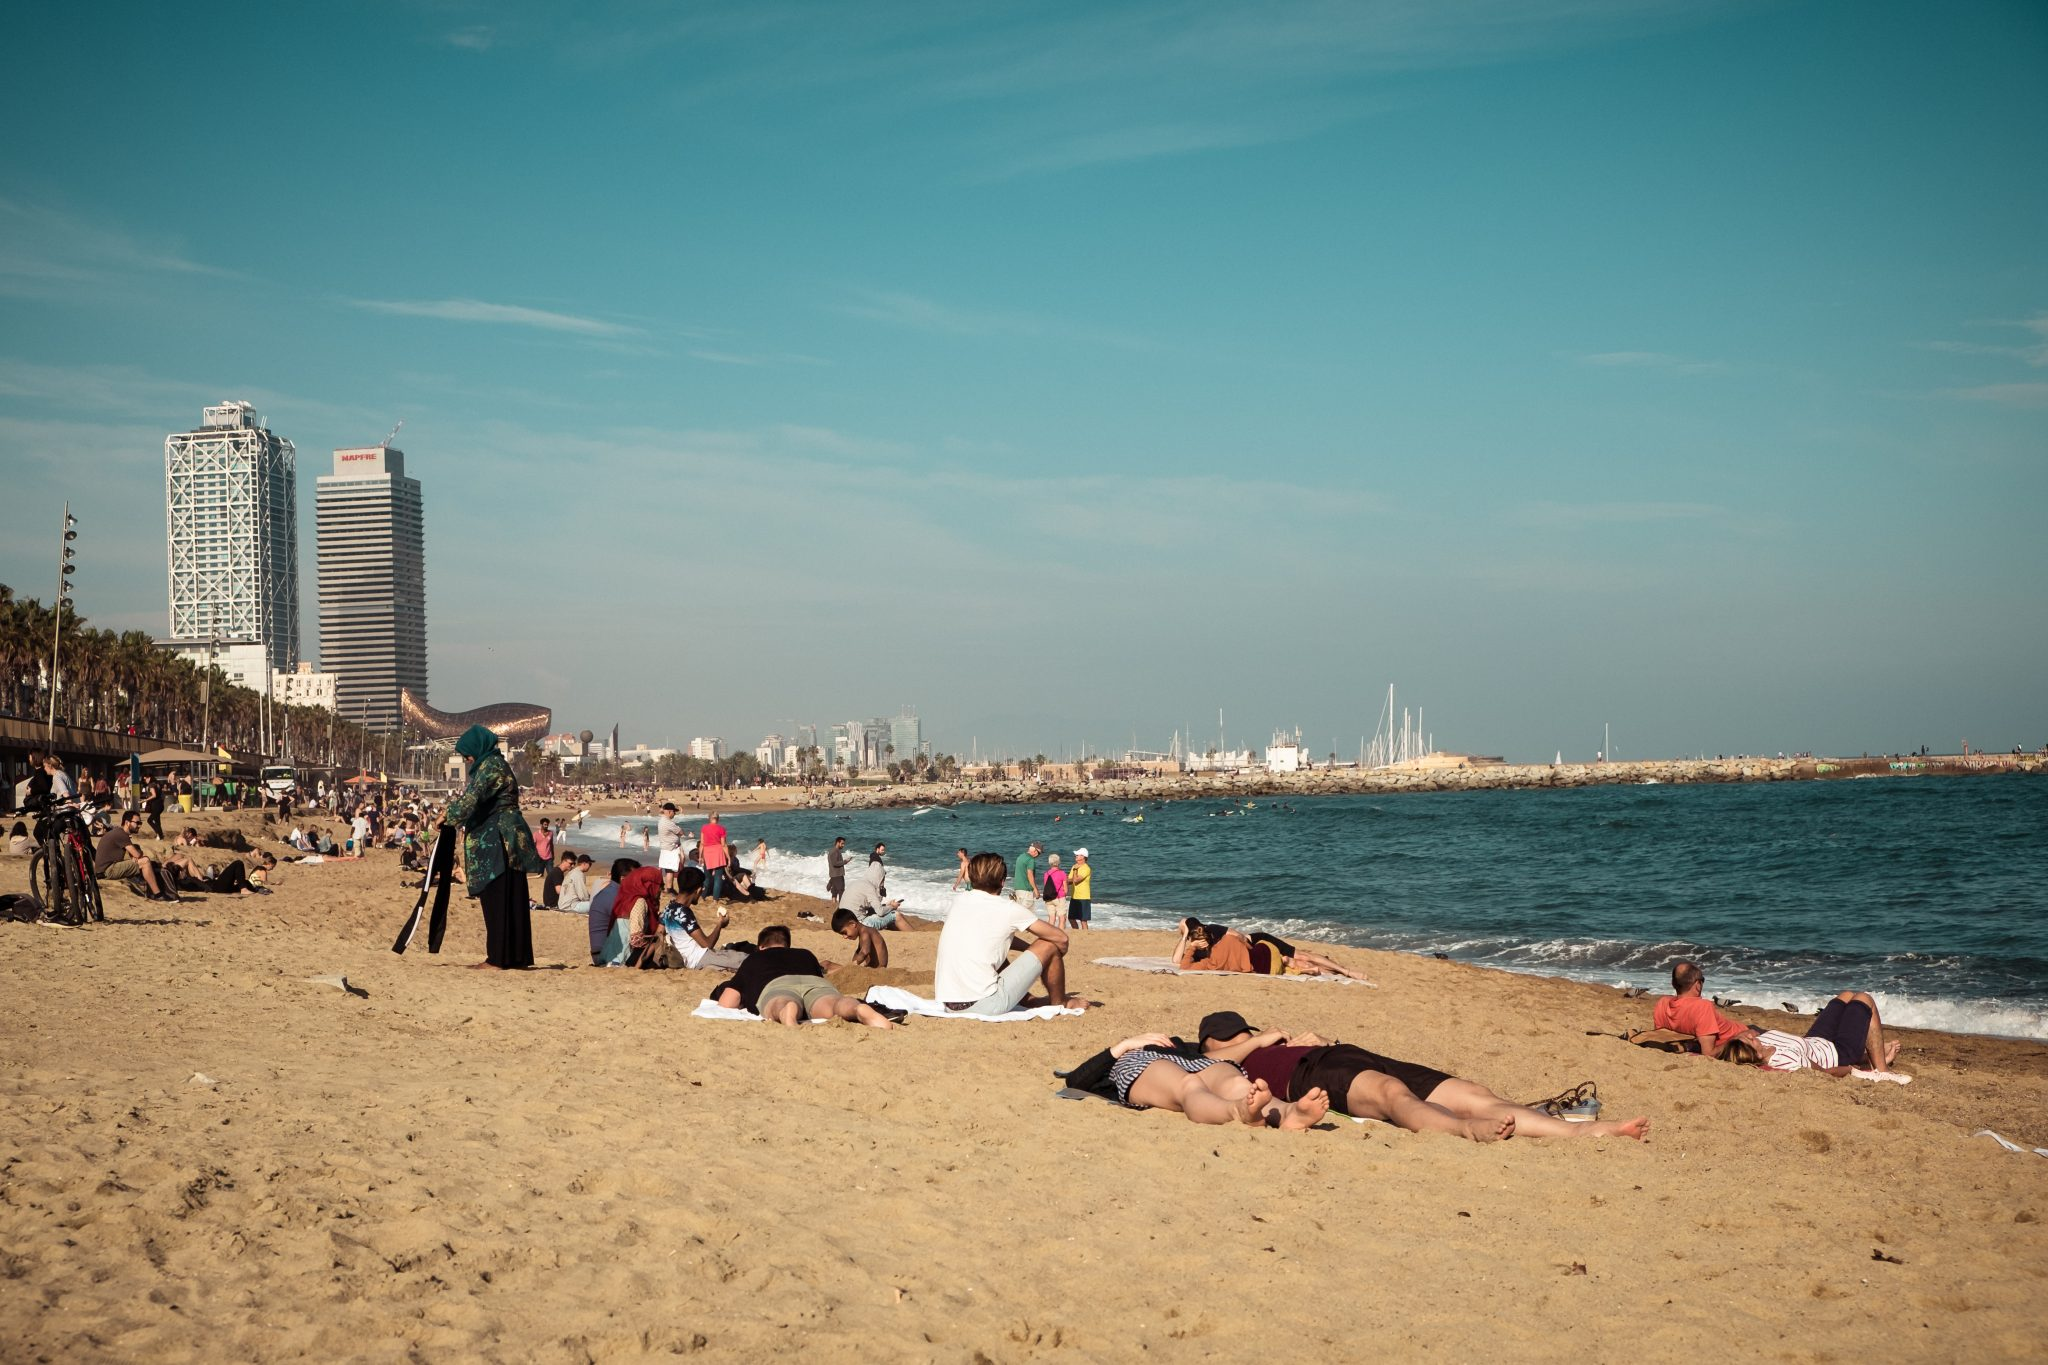 People relaxing on the beach photo by Jo Kassis